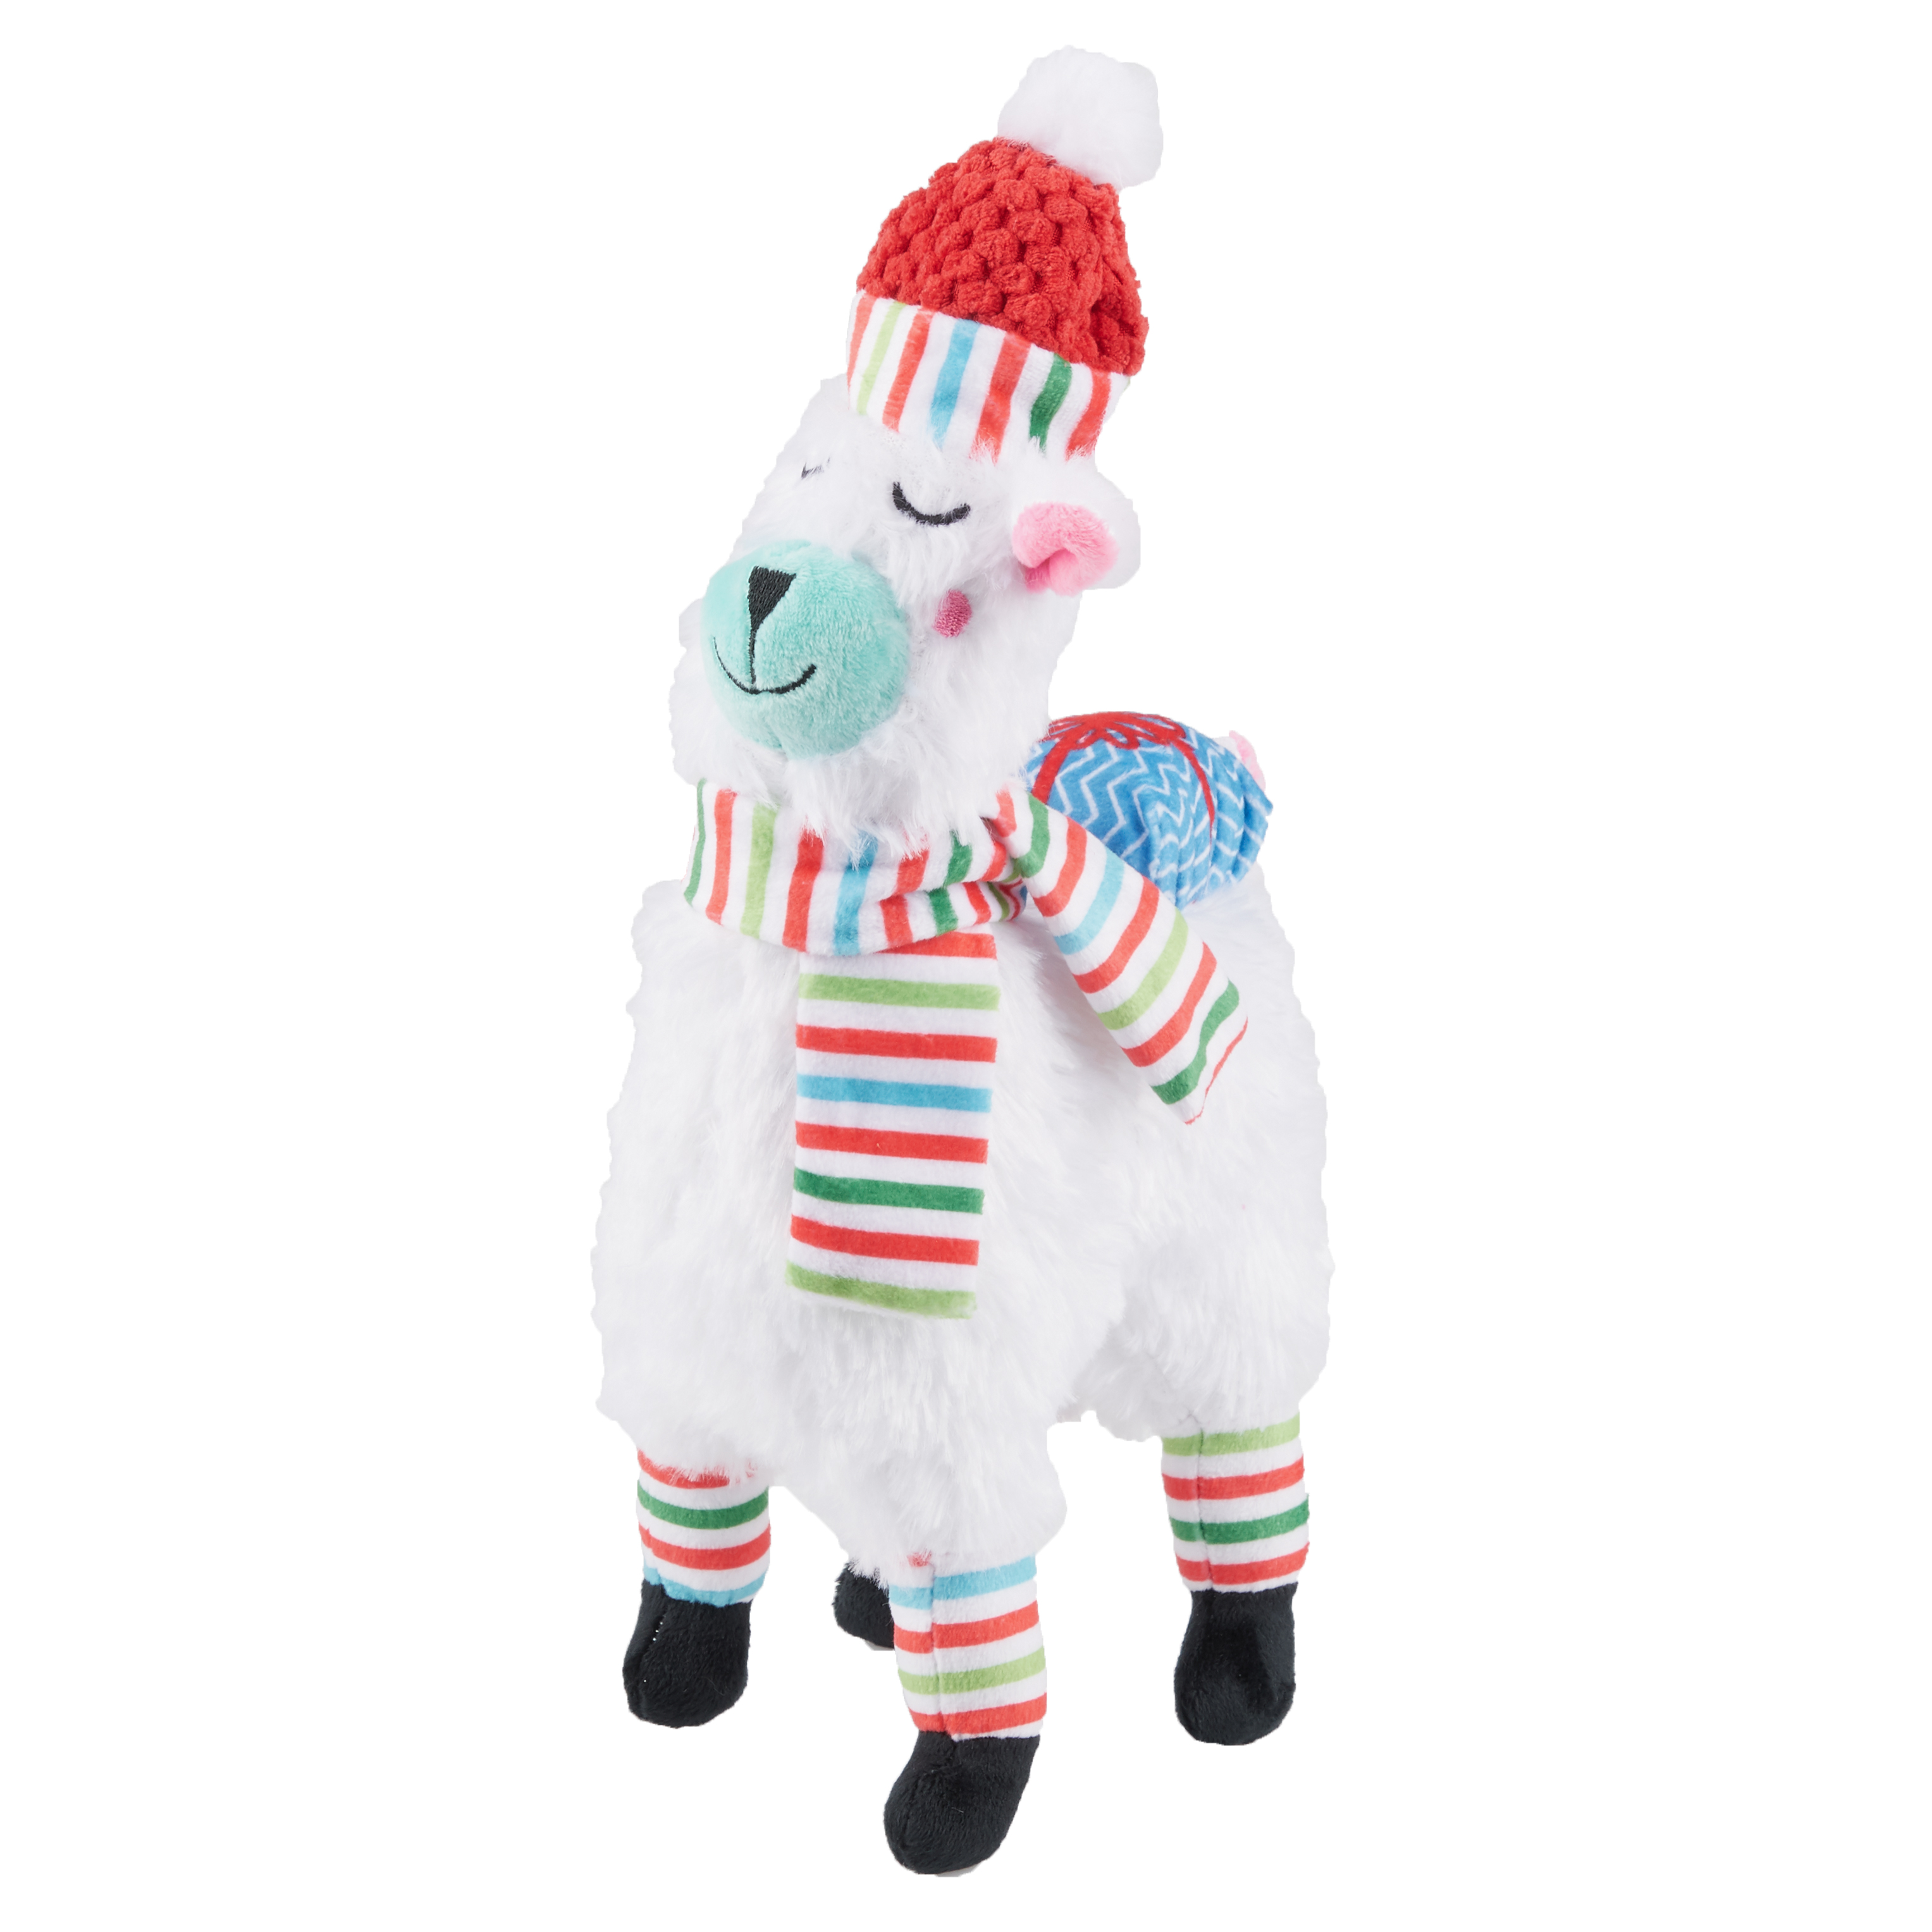 Winter Squeaky Plush Dog Toy, Llama with Stripes